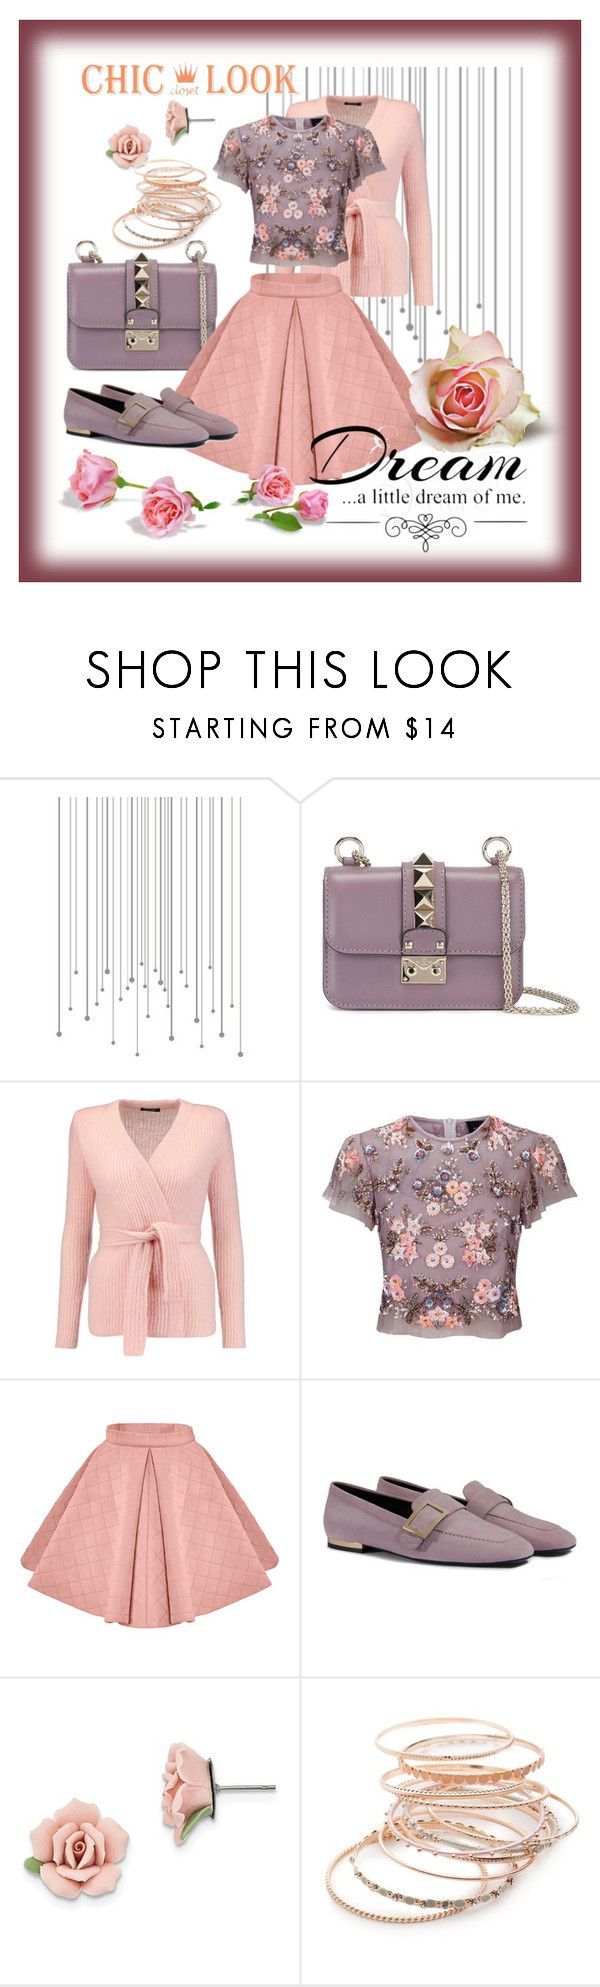 """""""Untitled #115"""" by mladja-bozic ❤ liked on Polyvore featuring Valentino, Balmain, Needle & Thread, 1928, Love Quotes Scarves and Red Camel"""